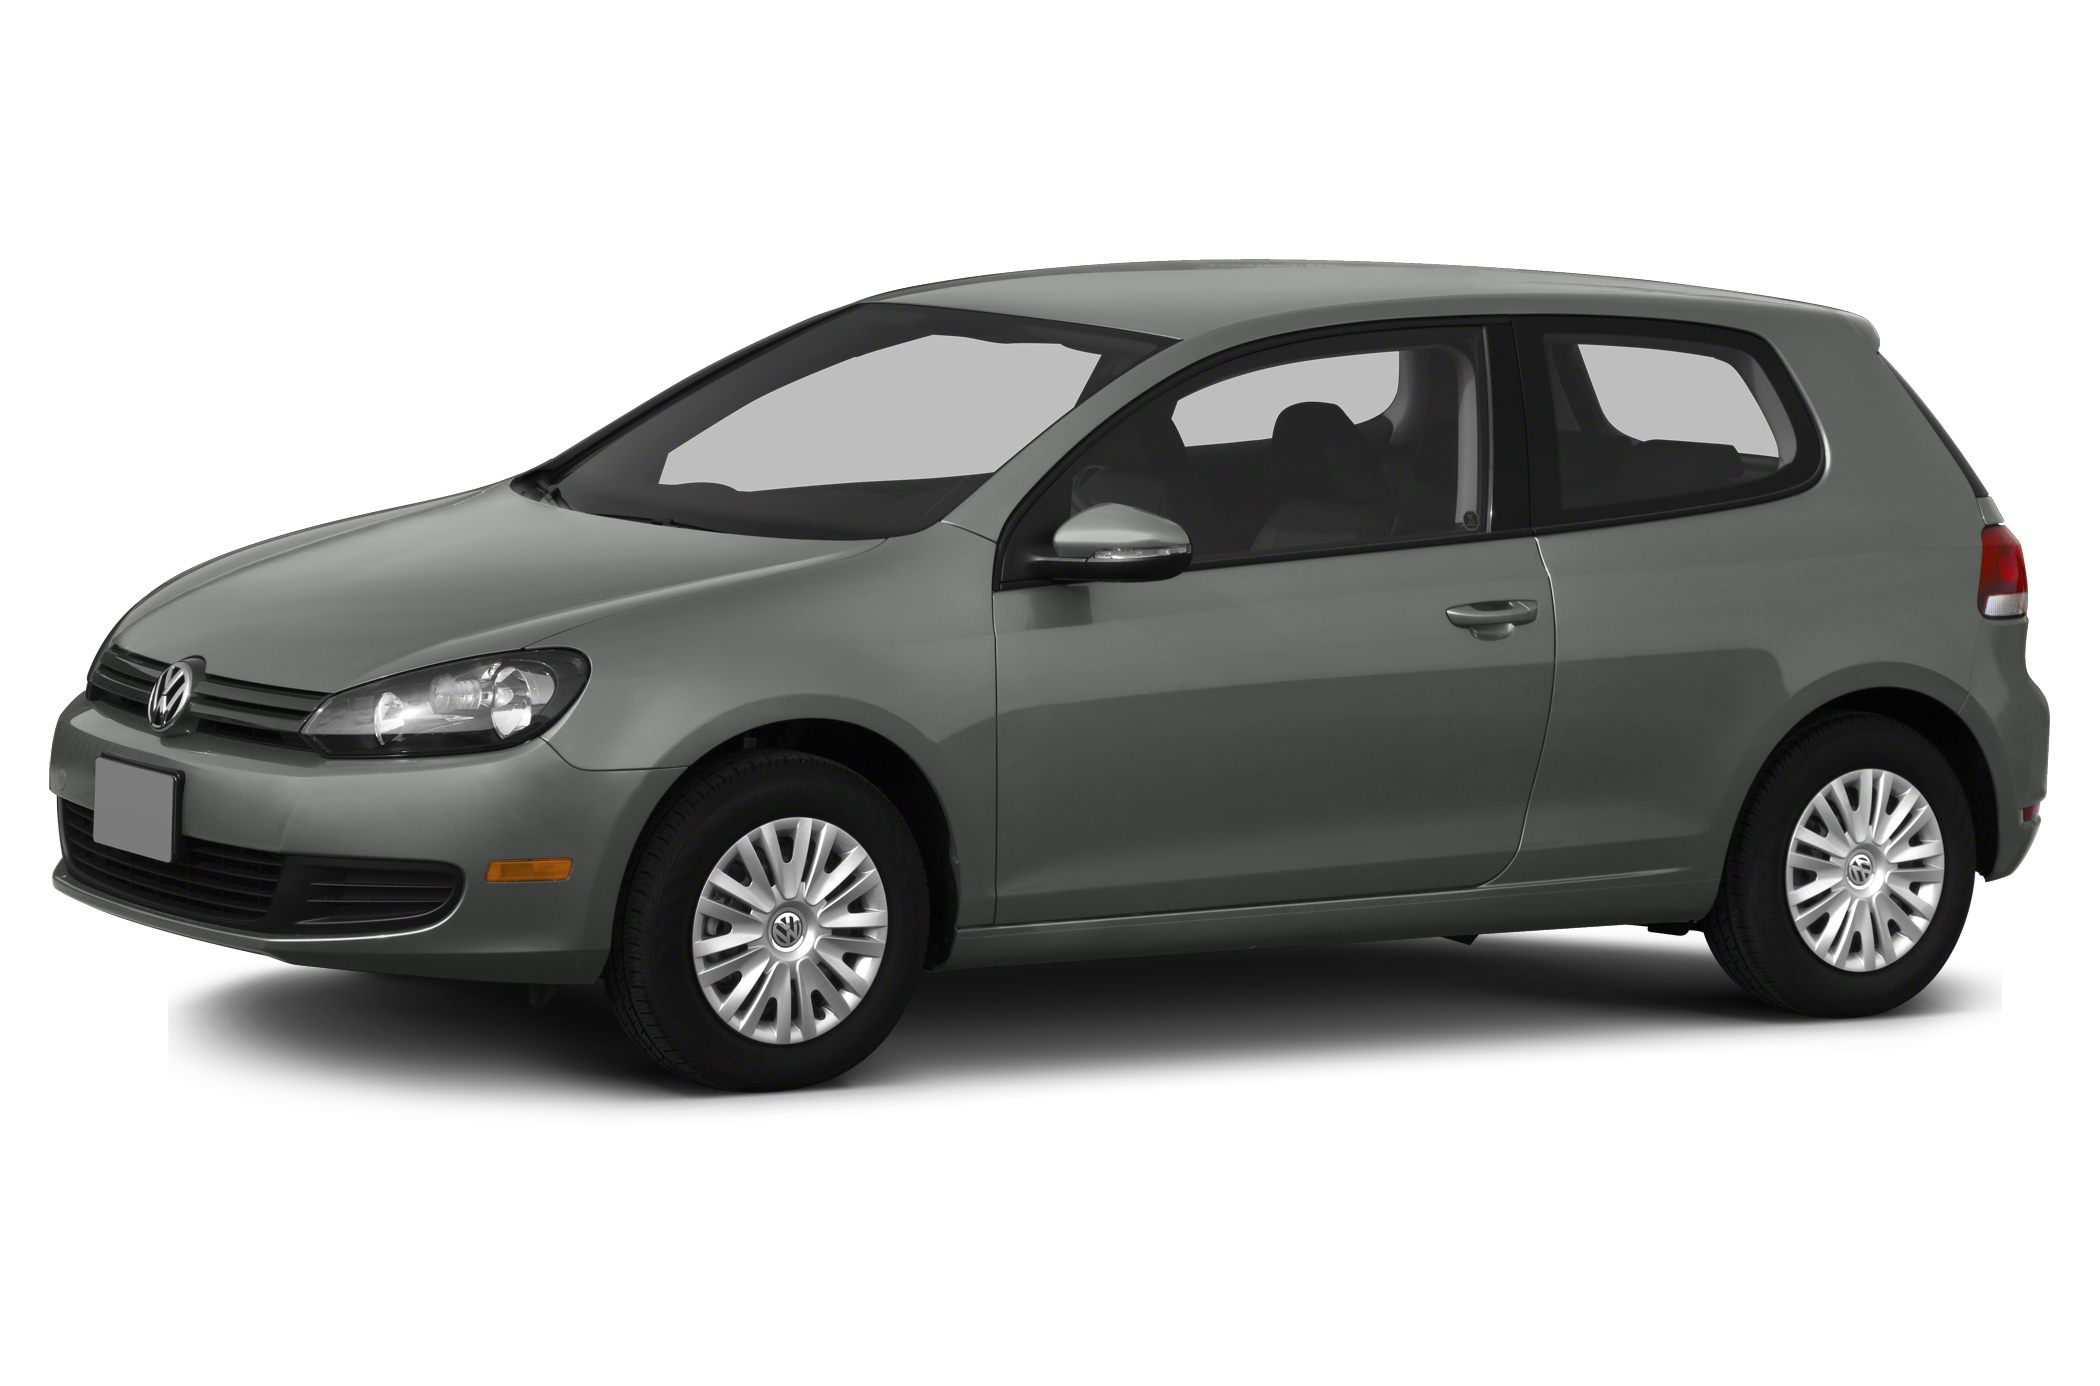 2013 Volkswagen Golf 2.5L Hatchback for sale in Vancouver for $13,900 with 36,382 miles.